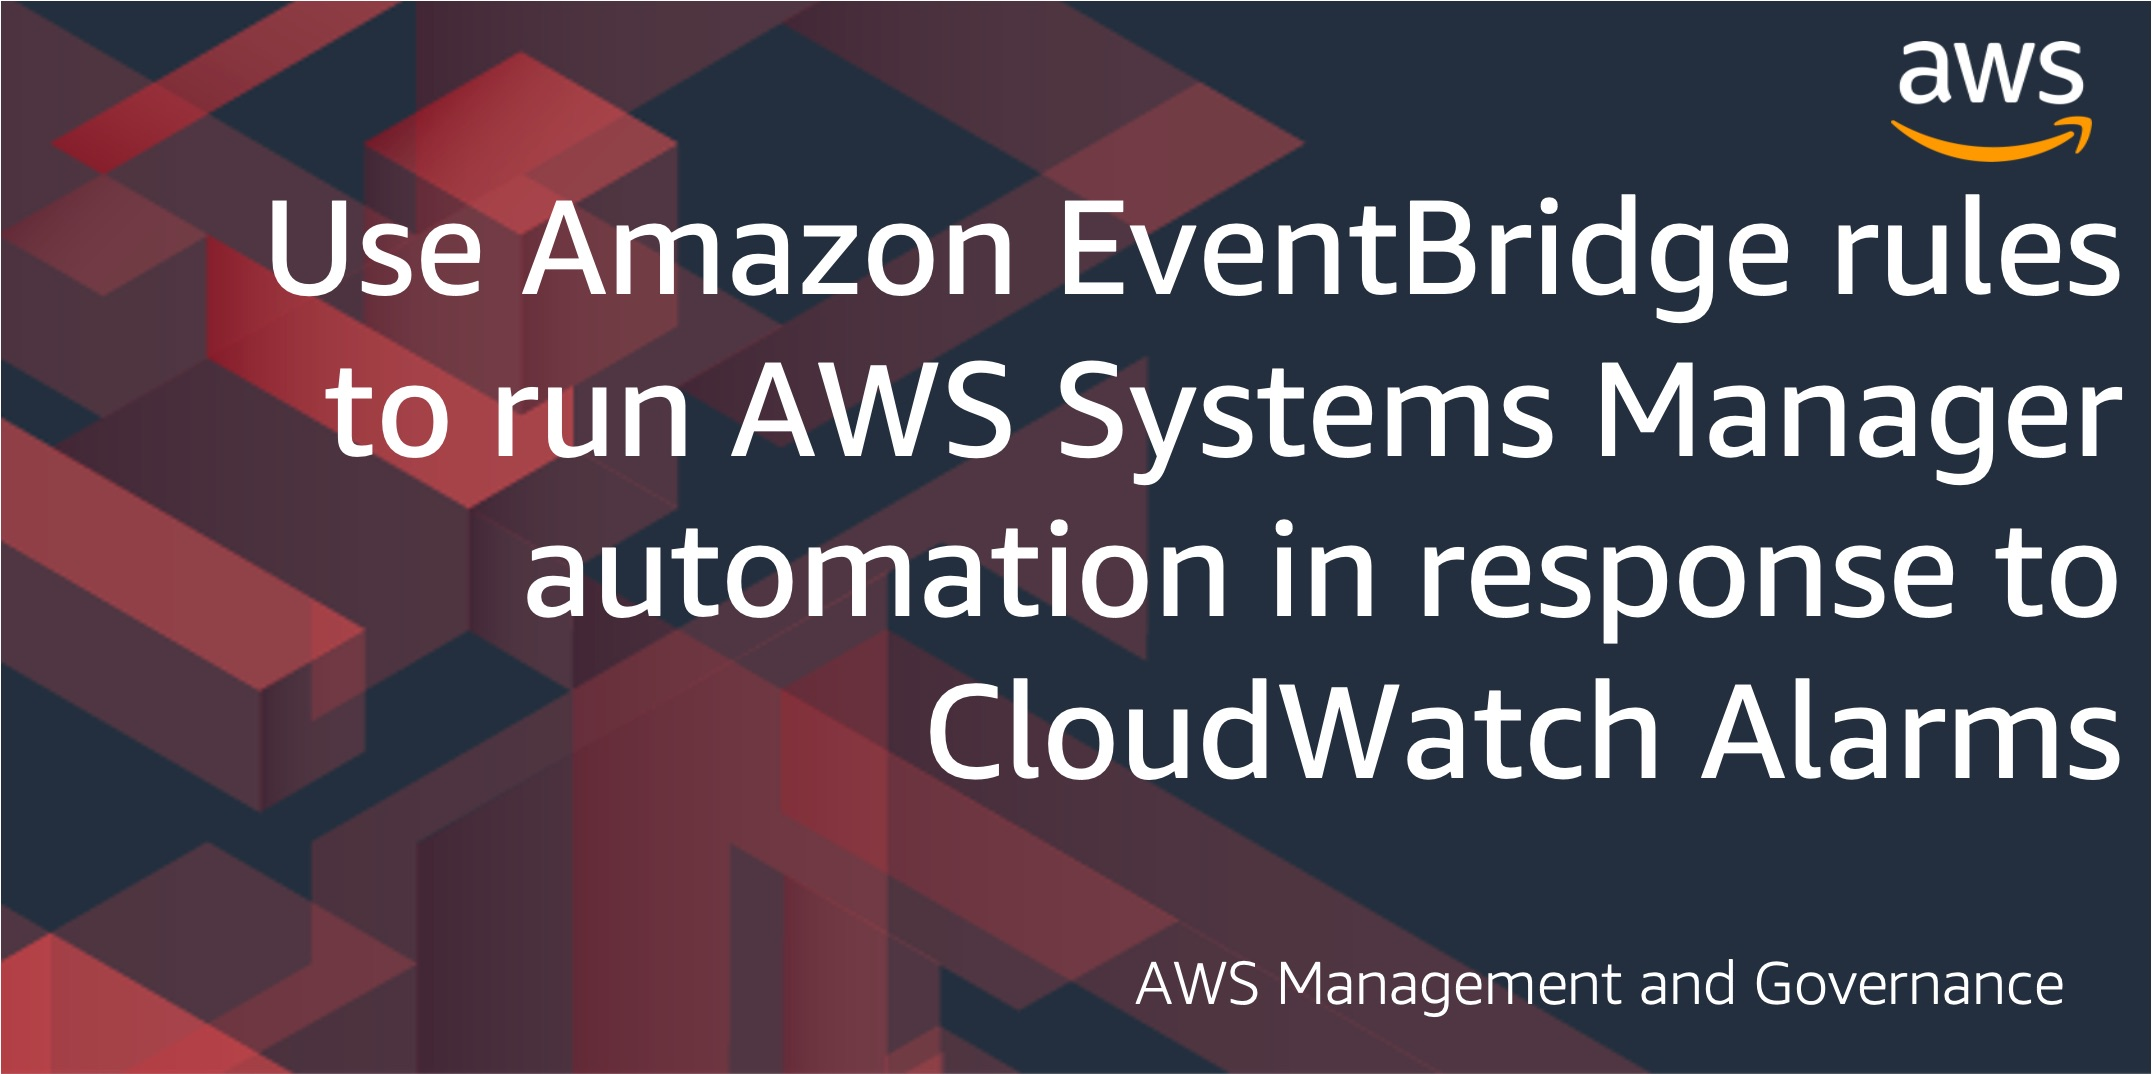 Use Amazon EventBridge rules to run AWS Systems Manager automation in response to CloudWatch Alarms